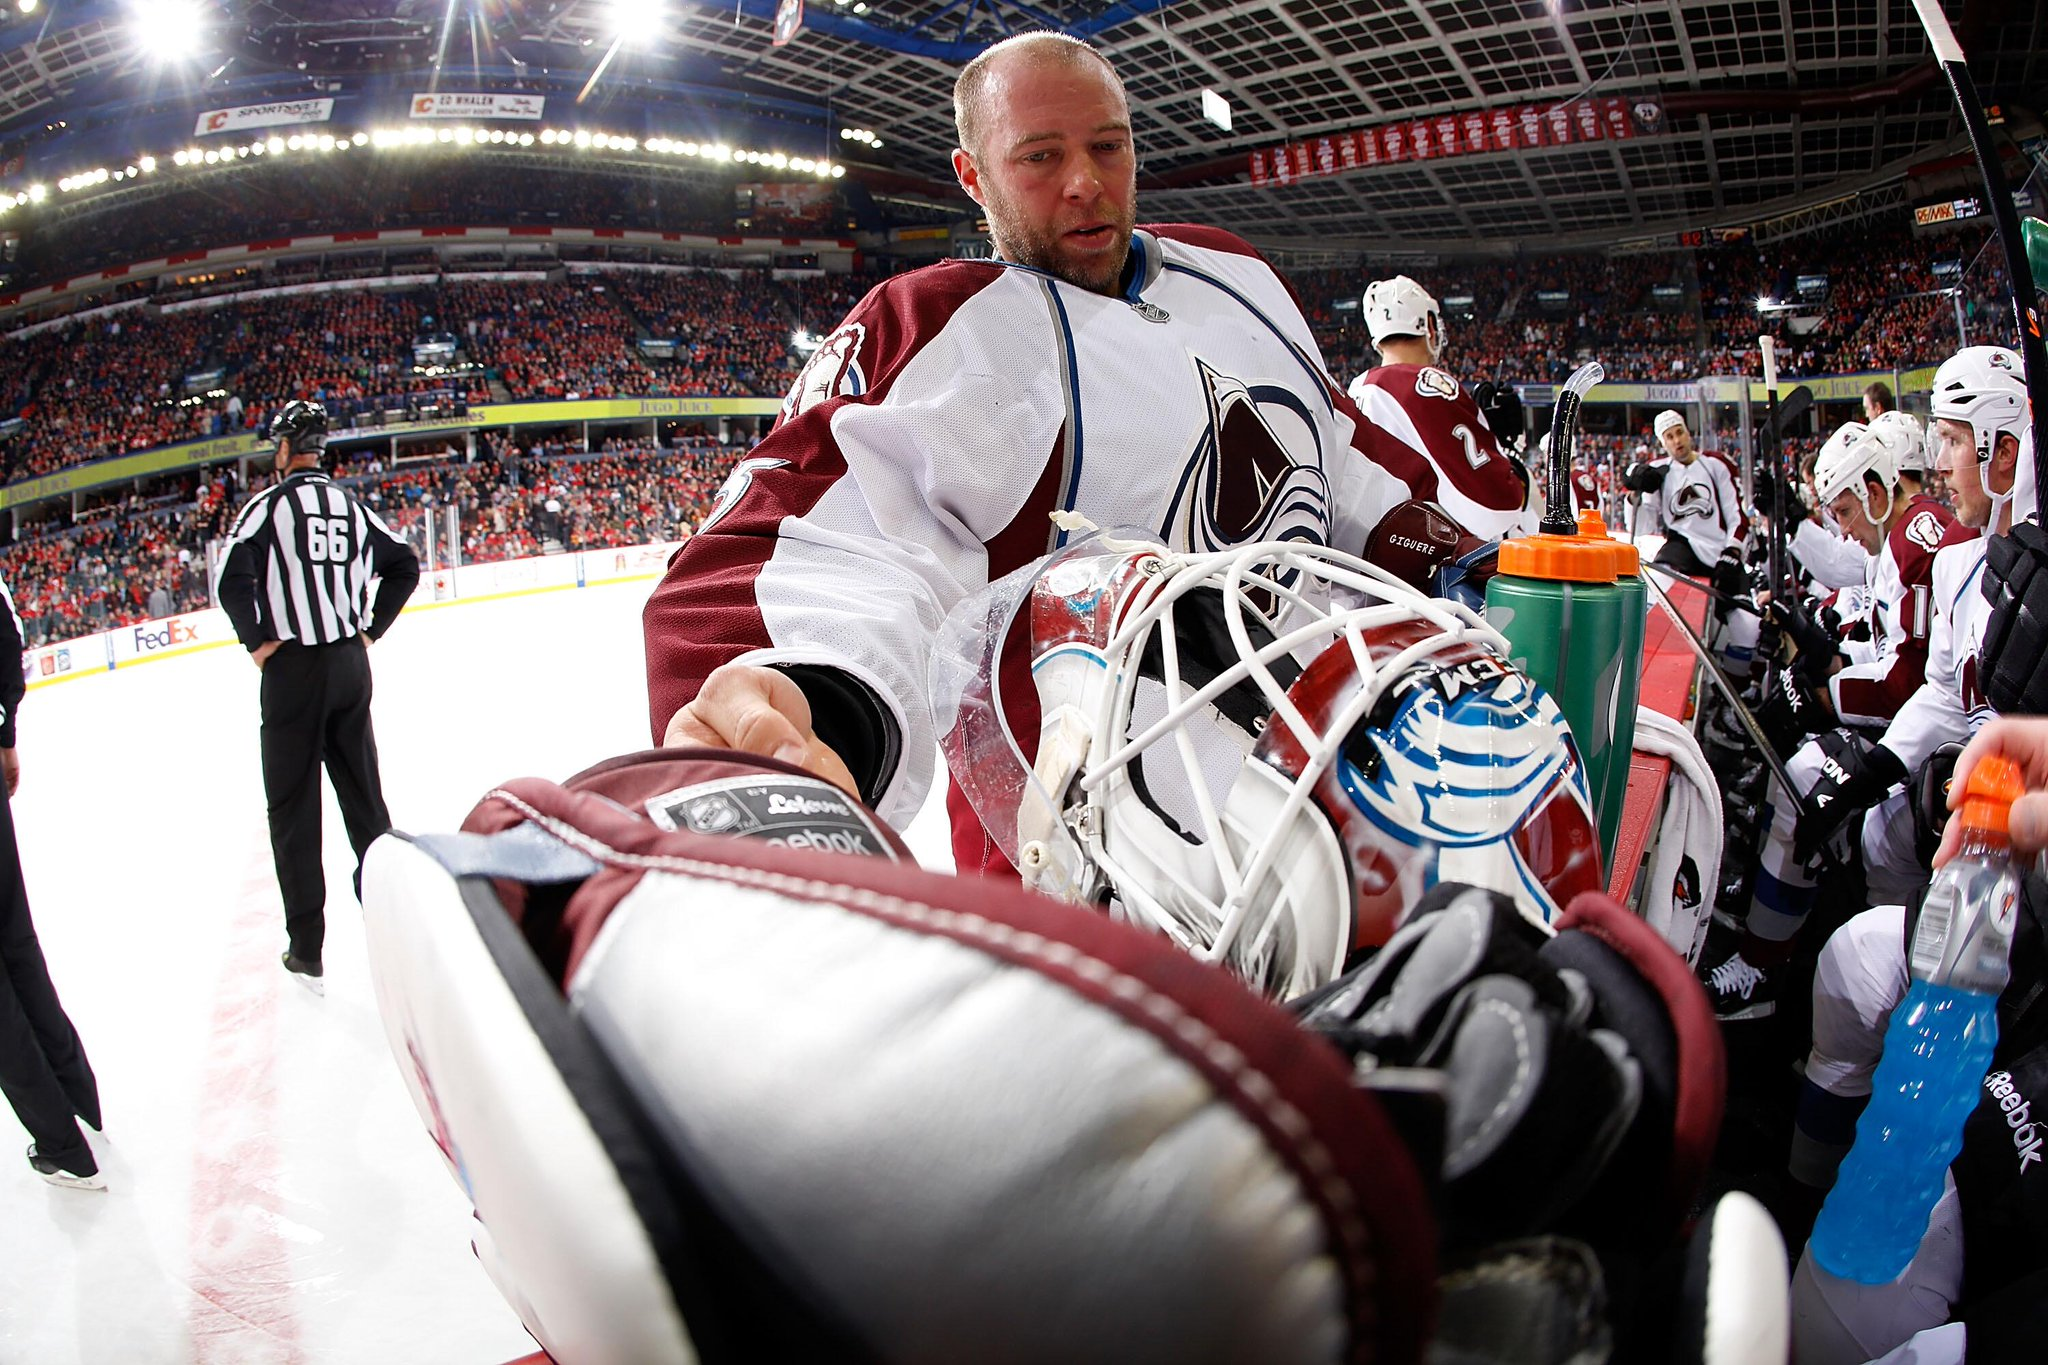 DID YOU KNOW? @Avalanche J.S.Giguere is the first goalie in franchise history to start his season 7-0-0. http://t.co/yvEhjAN9ib